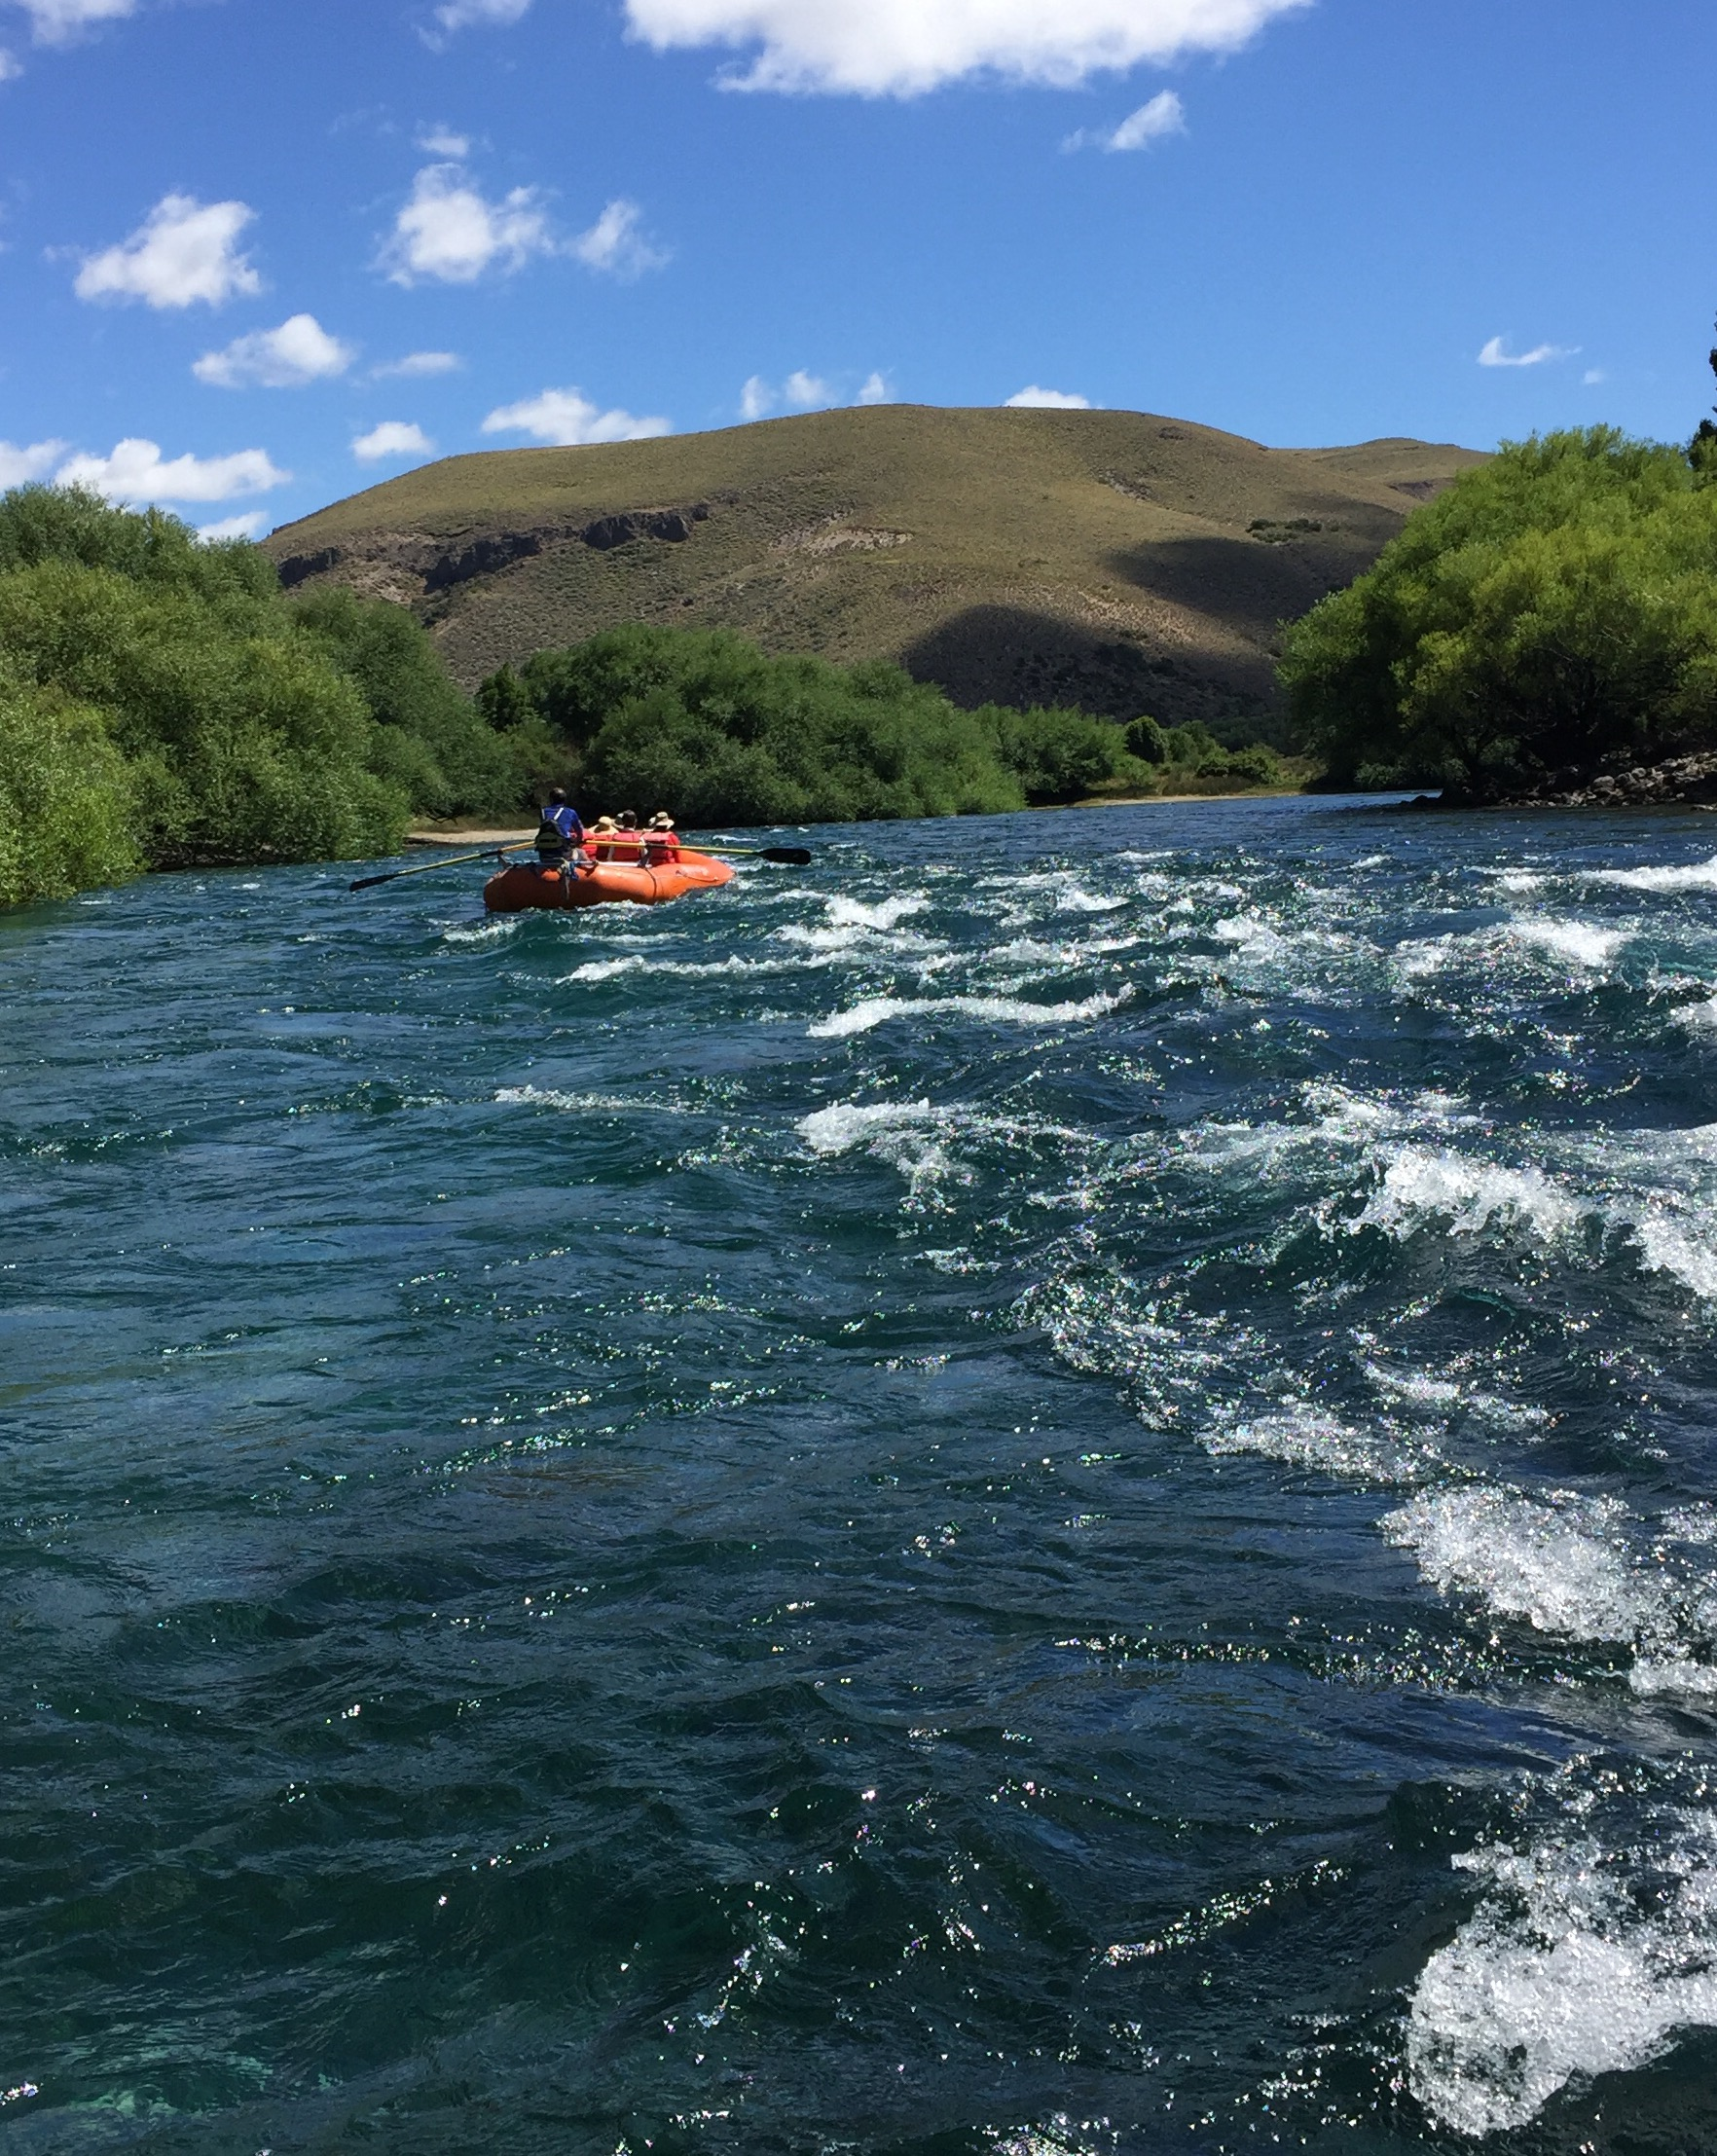 Enjoying a relatively calm raft trip down the beautifully clear Limay River.